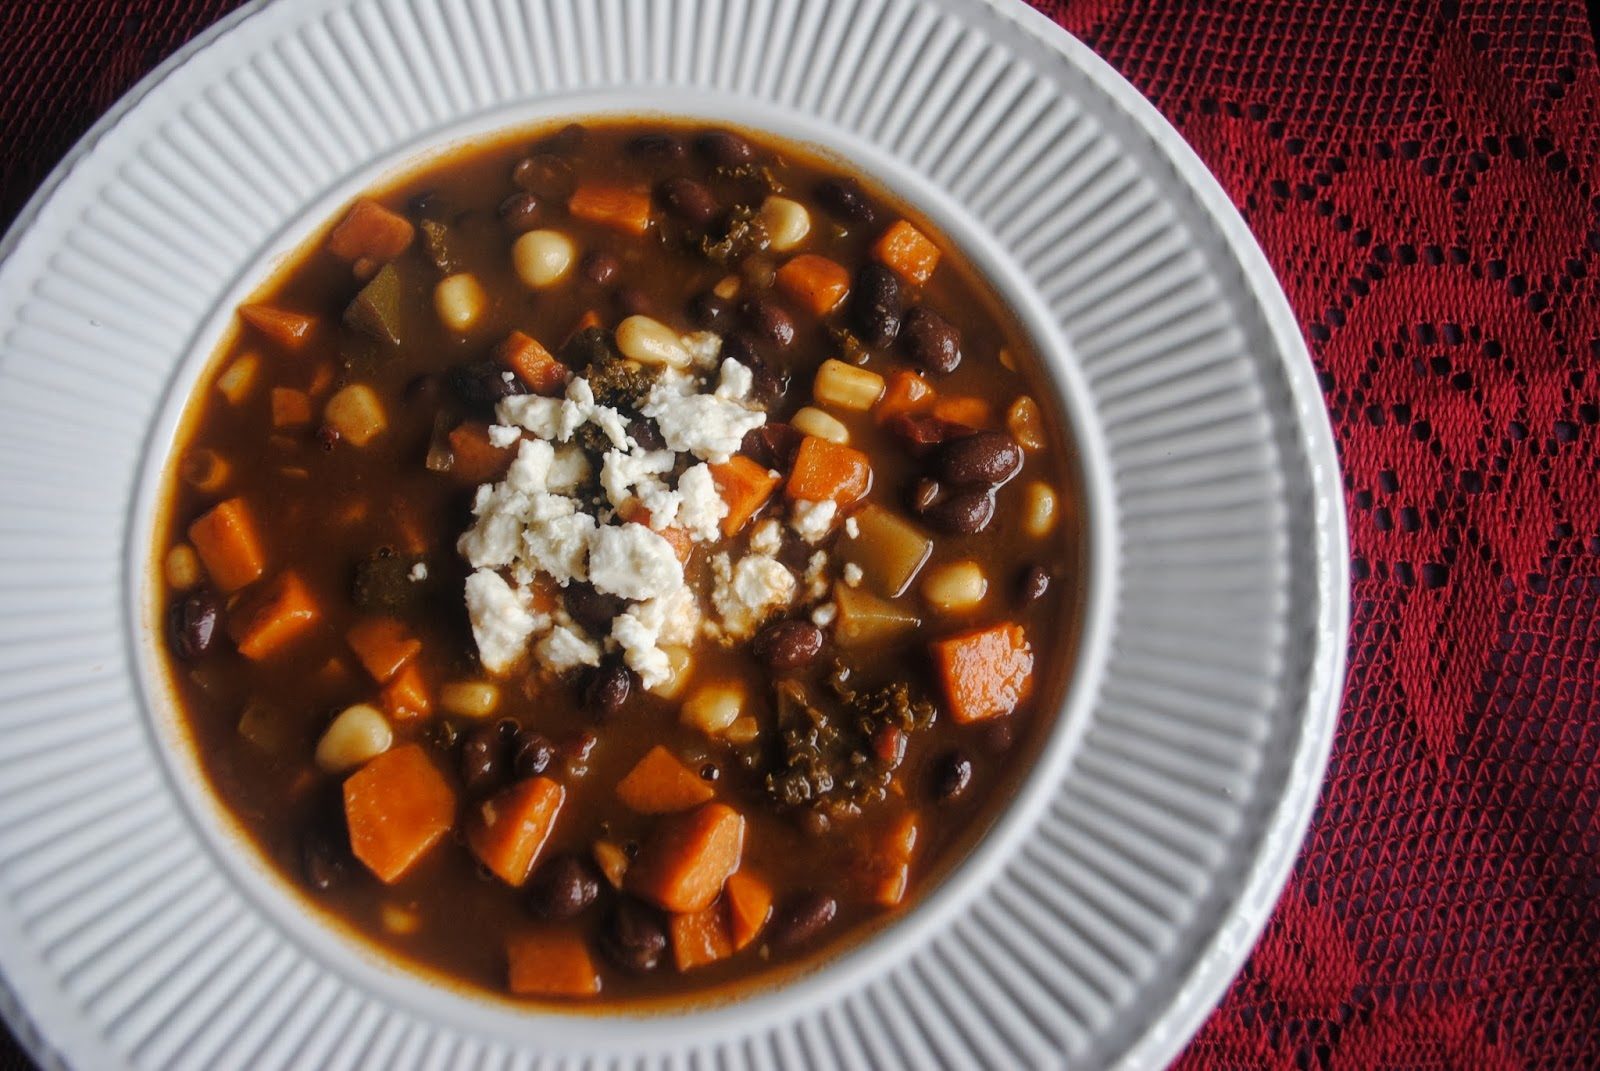 Annie's Gluten Free Grub: Chipotle Sweet Potato and Black Bean Soup